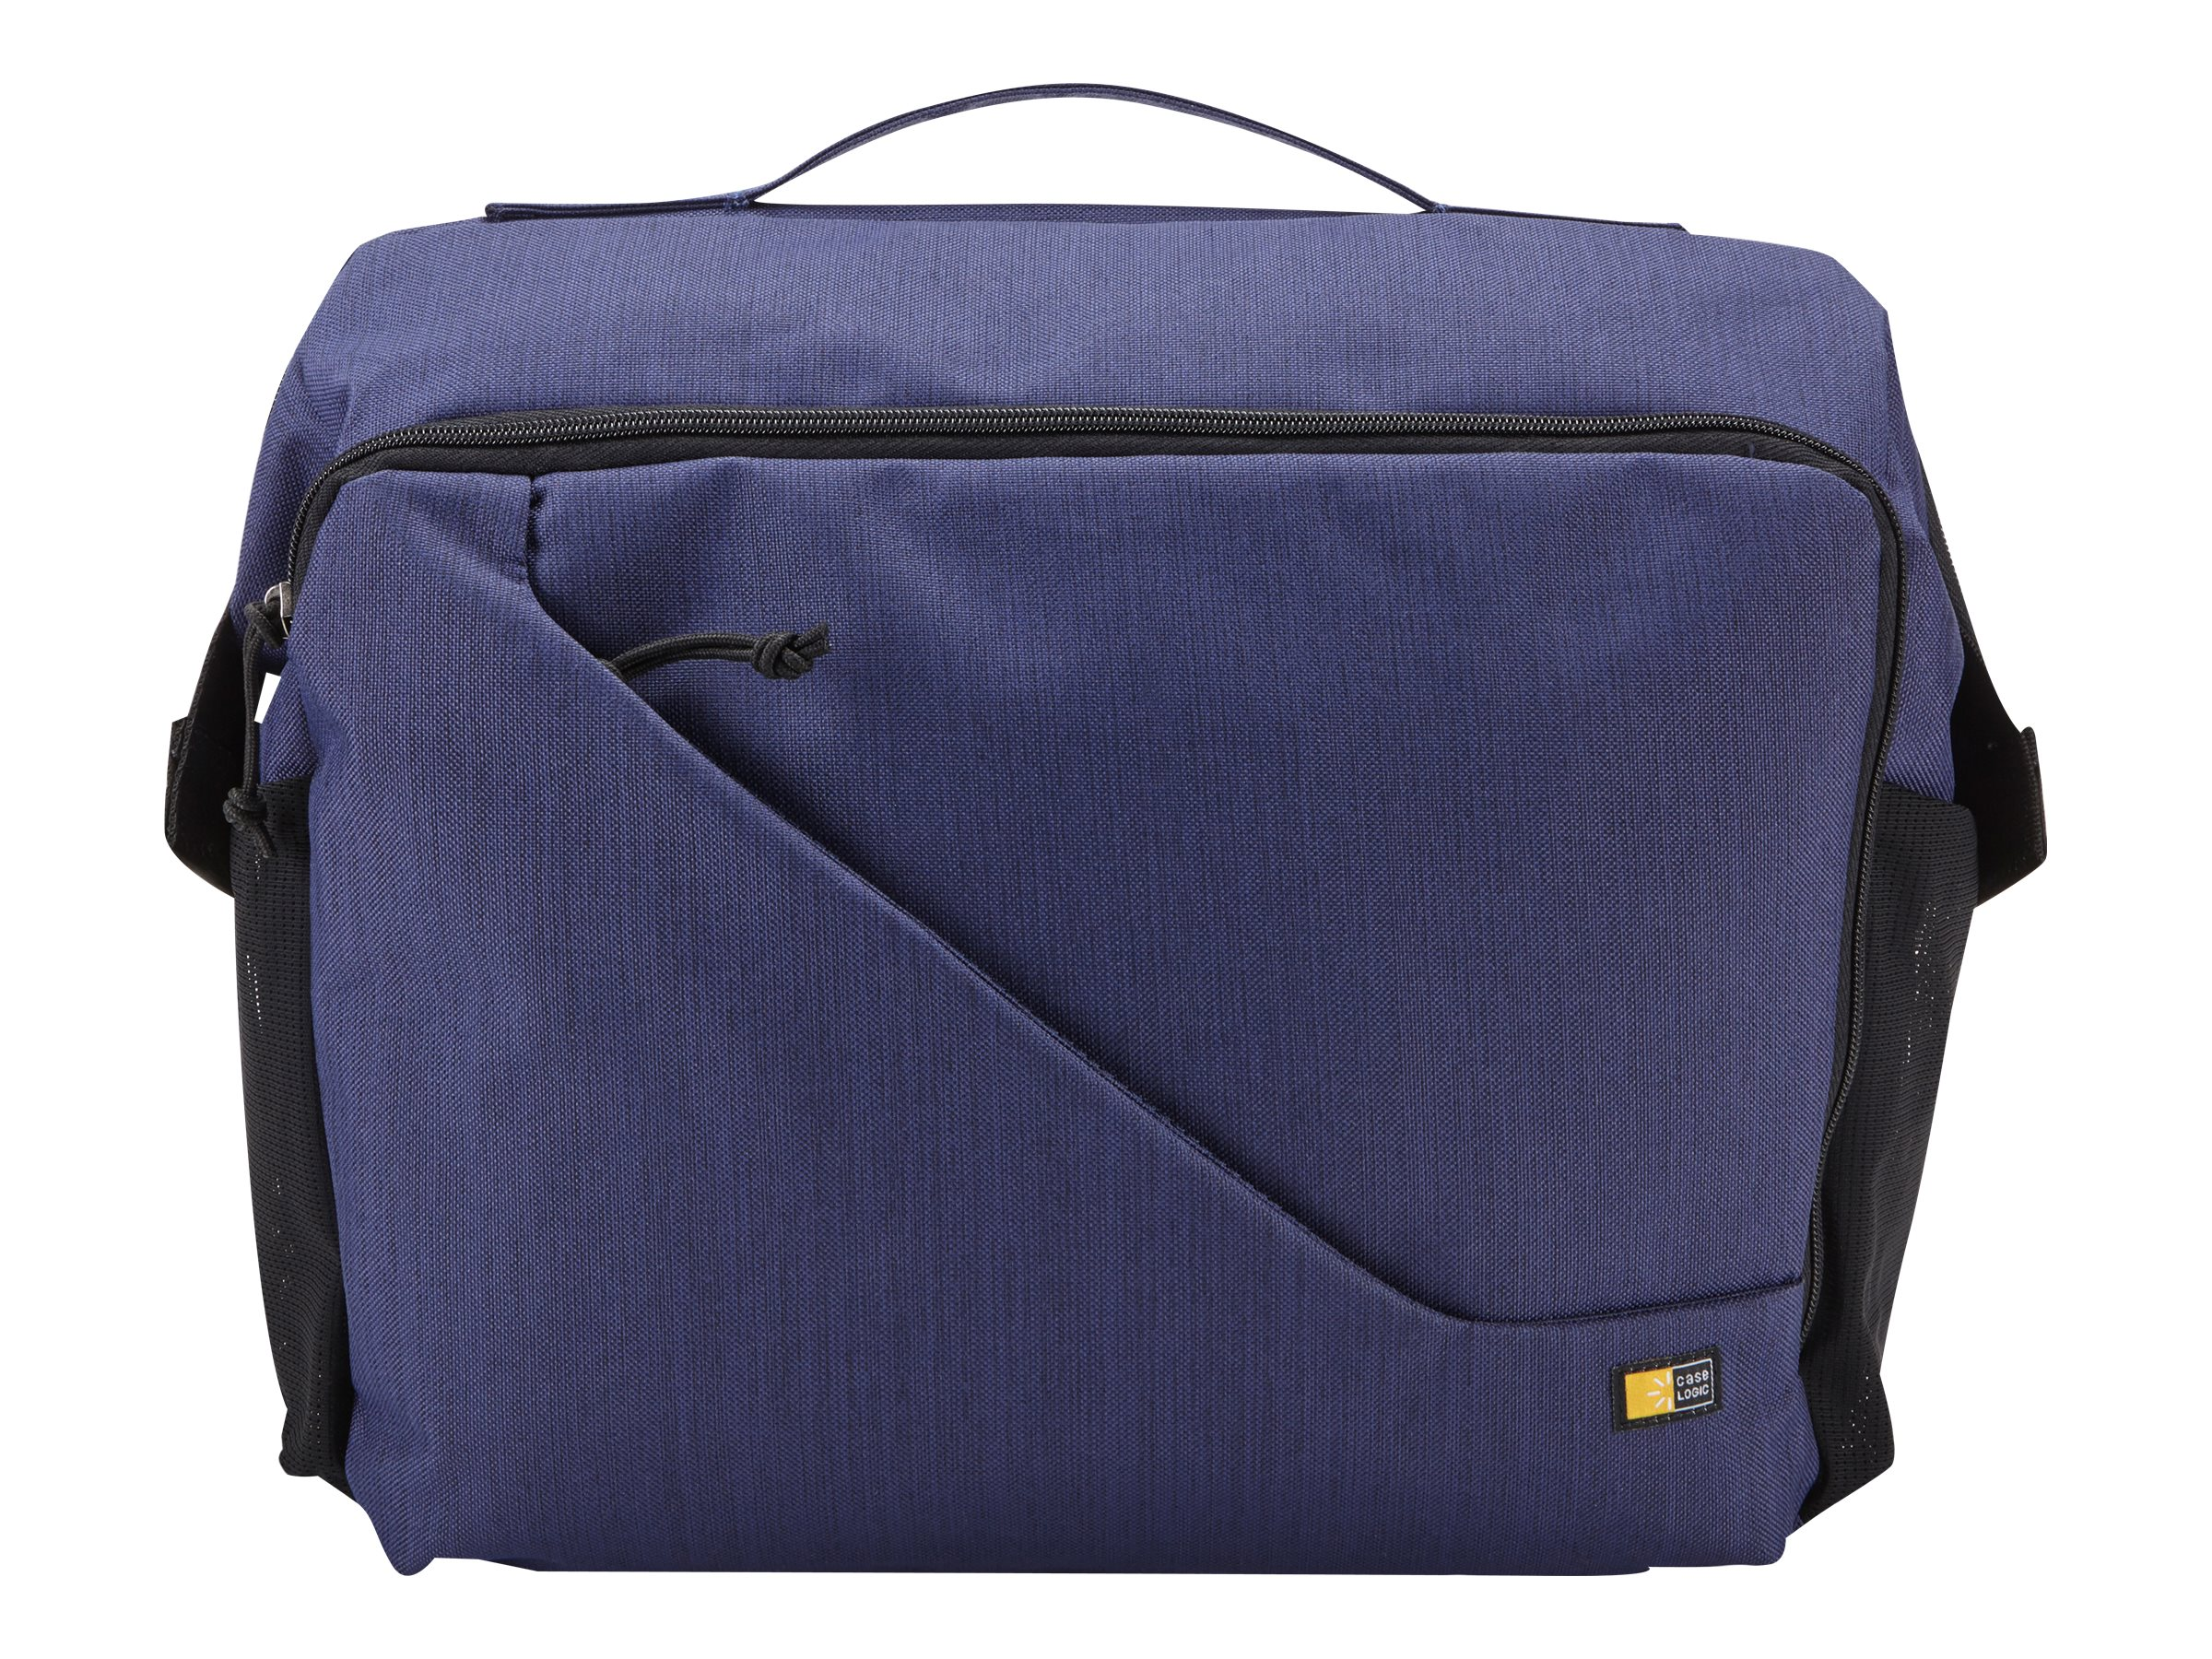 Case Logic Reflexion DSLR Medium Shoulder Bag, Indigo